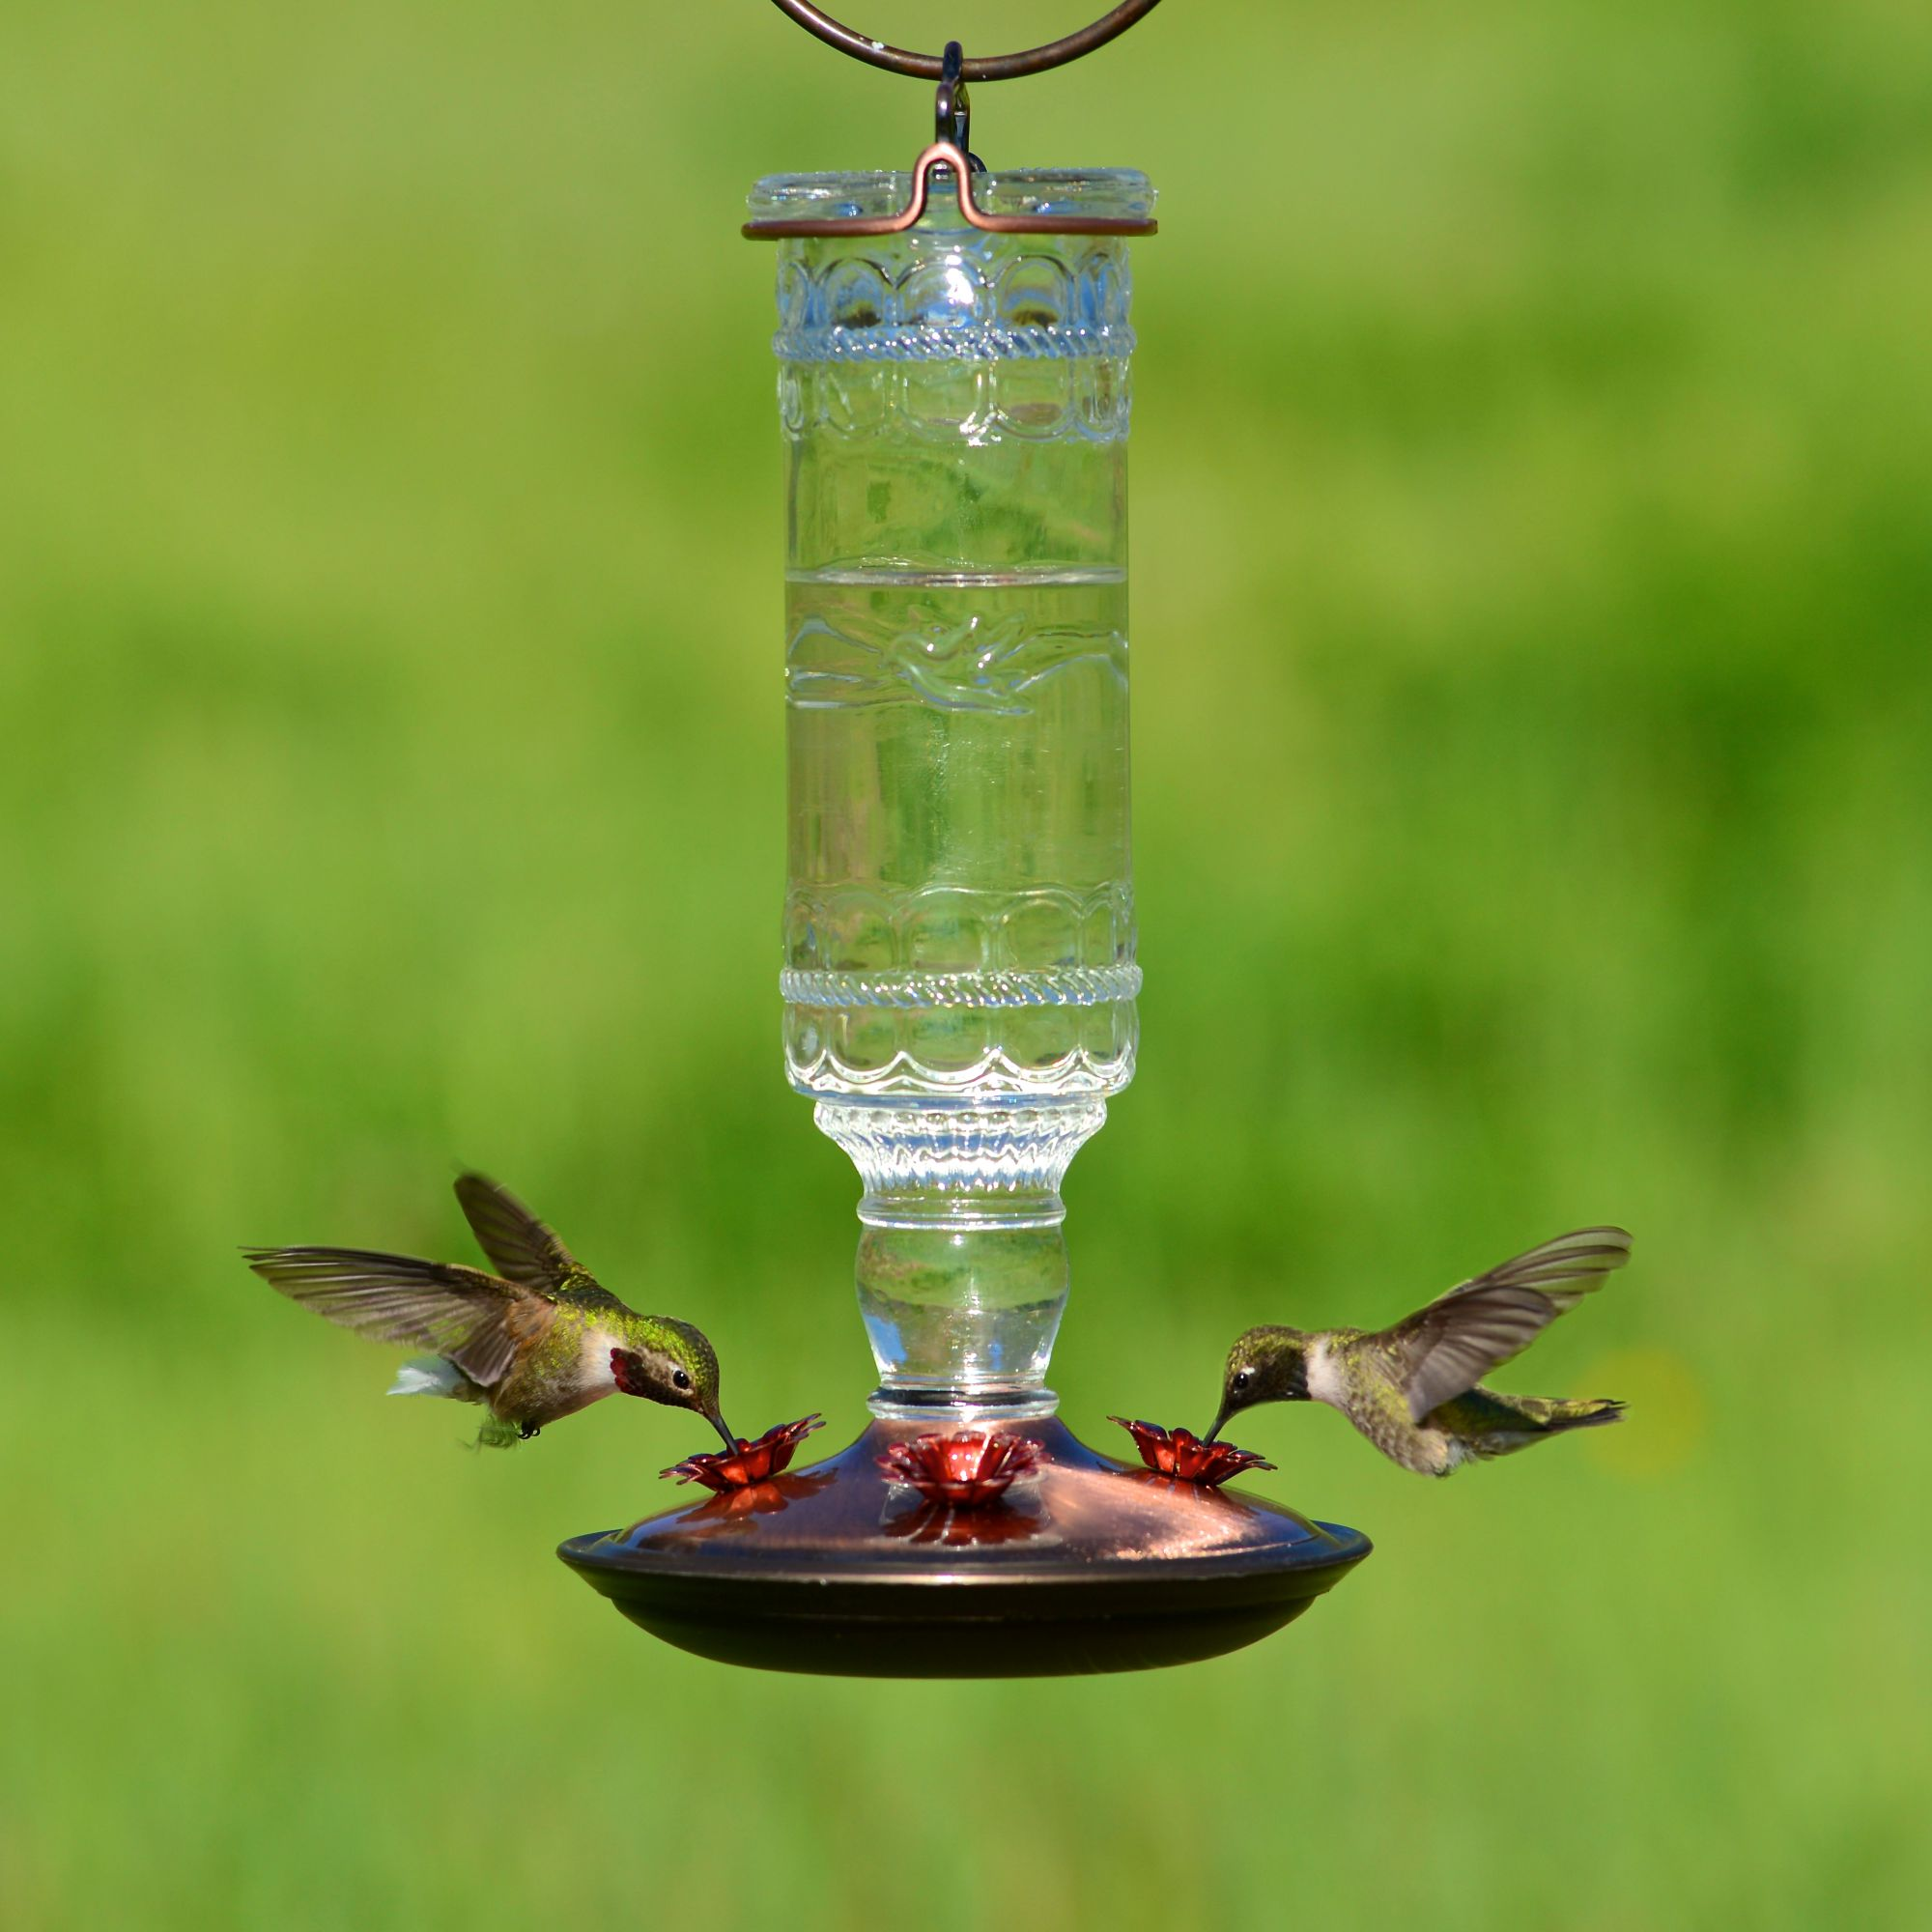 With the Perky-Pet Pinch-Waist Glass Hummingbird Feeder, entertaining hummingbirds in your backyard has never been easier. It's the classic design that you know and love with a few great updates, including a new and improved wide-mouth bottle.